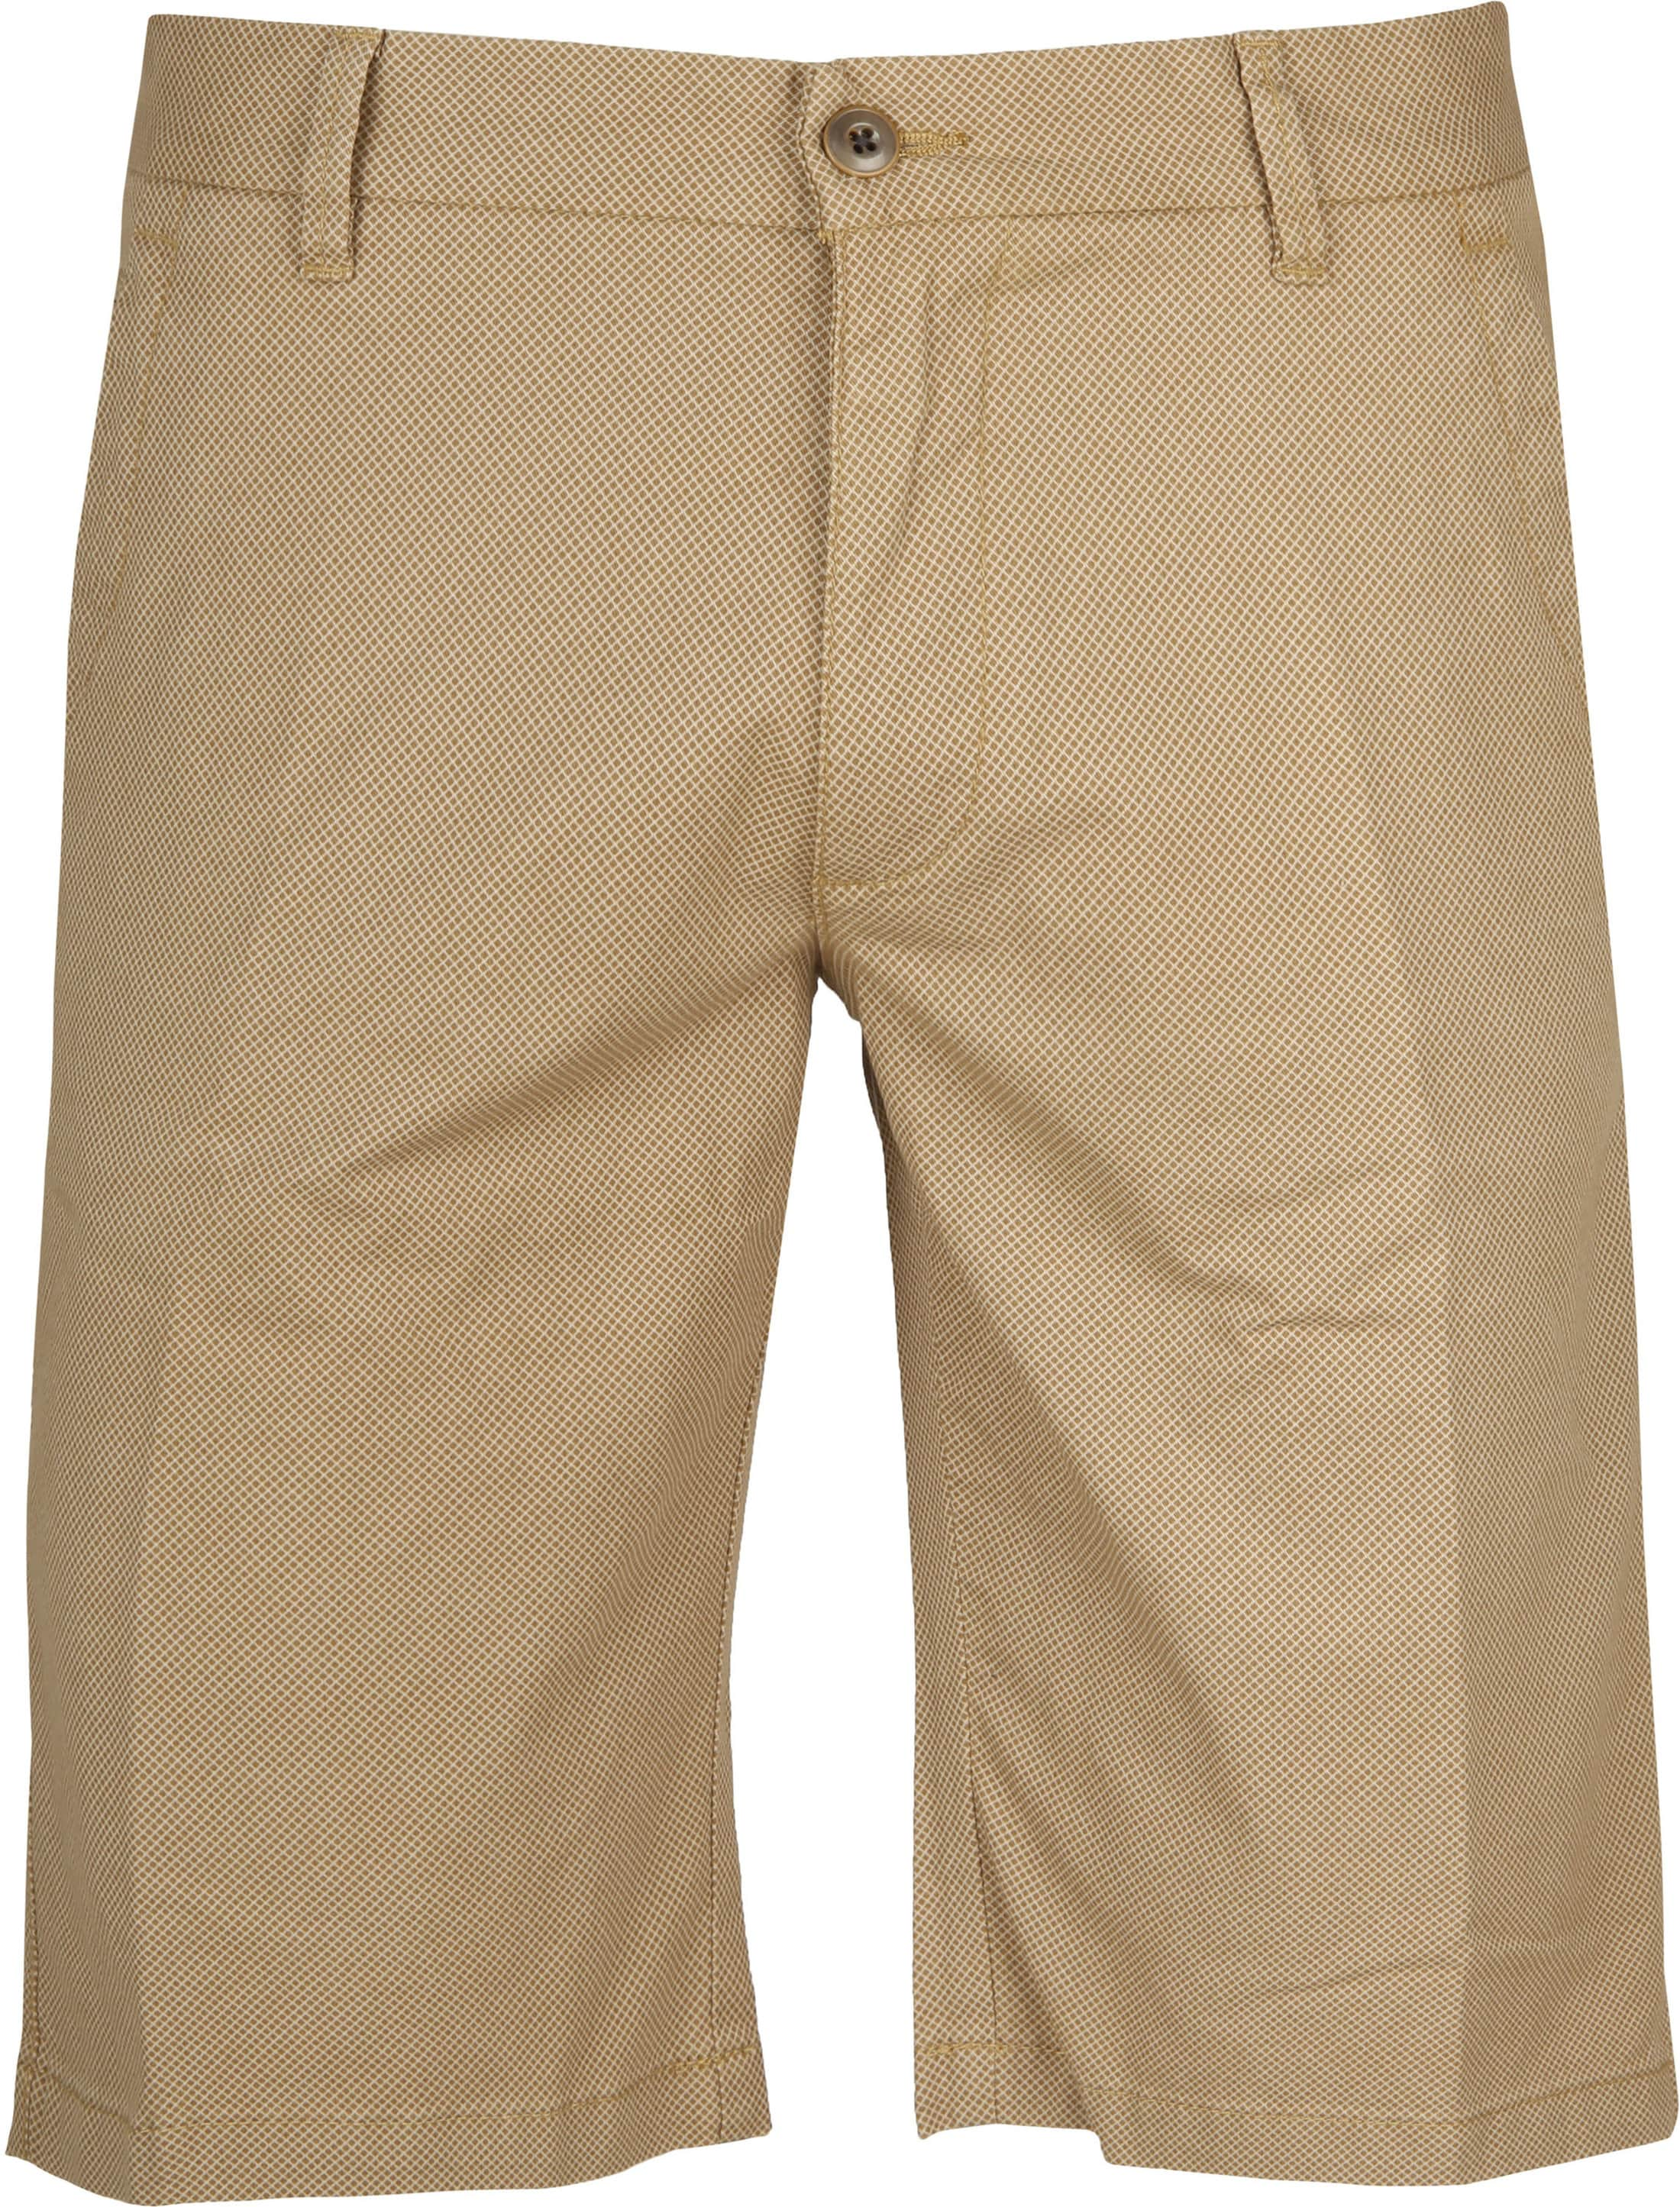 Gardeur Shorts Bermuda Dessin Brown